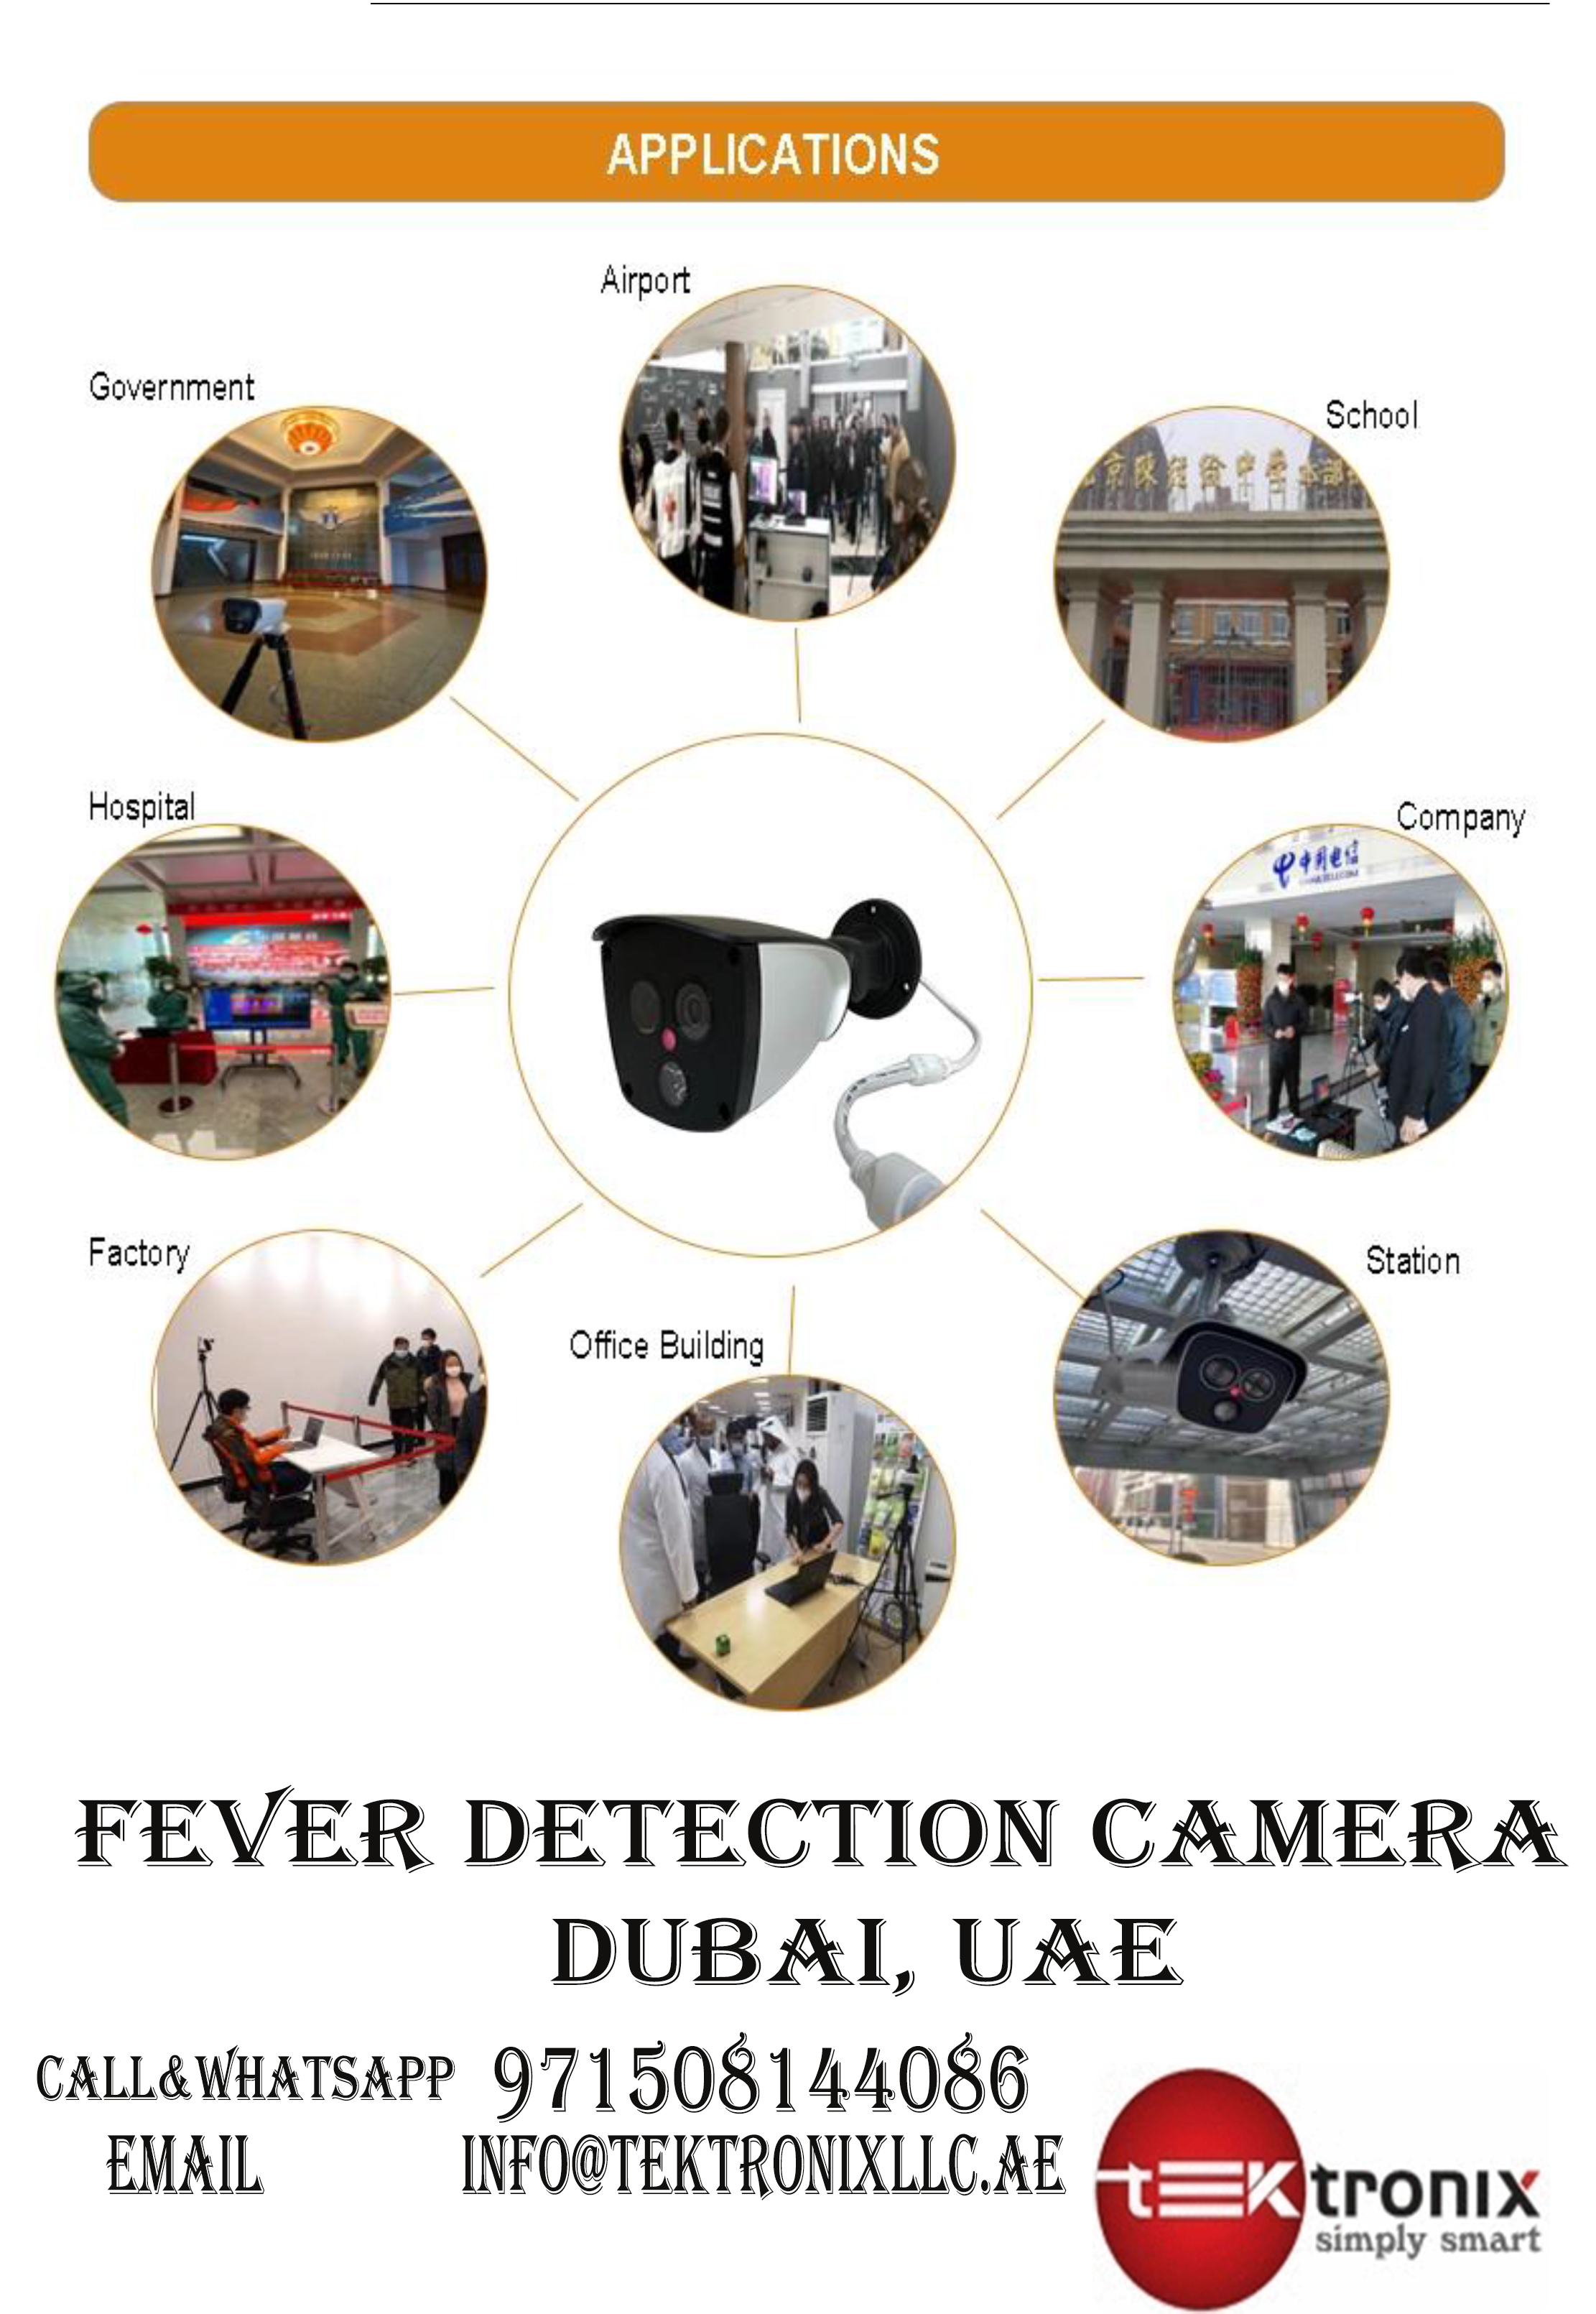 FEVER DETECTION CAMERA Dubai UAE